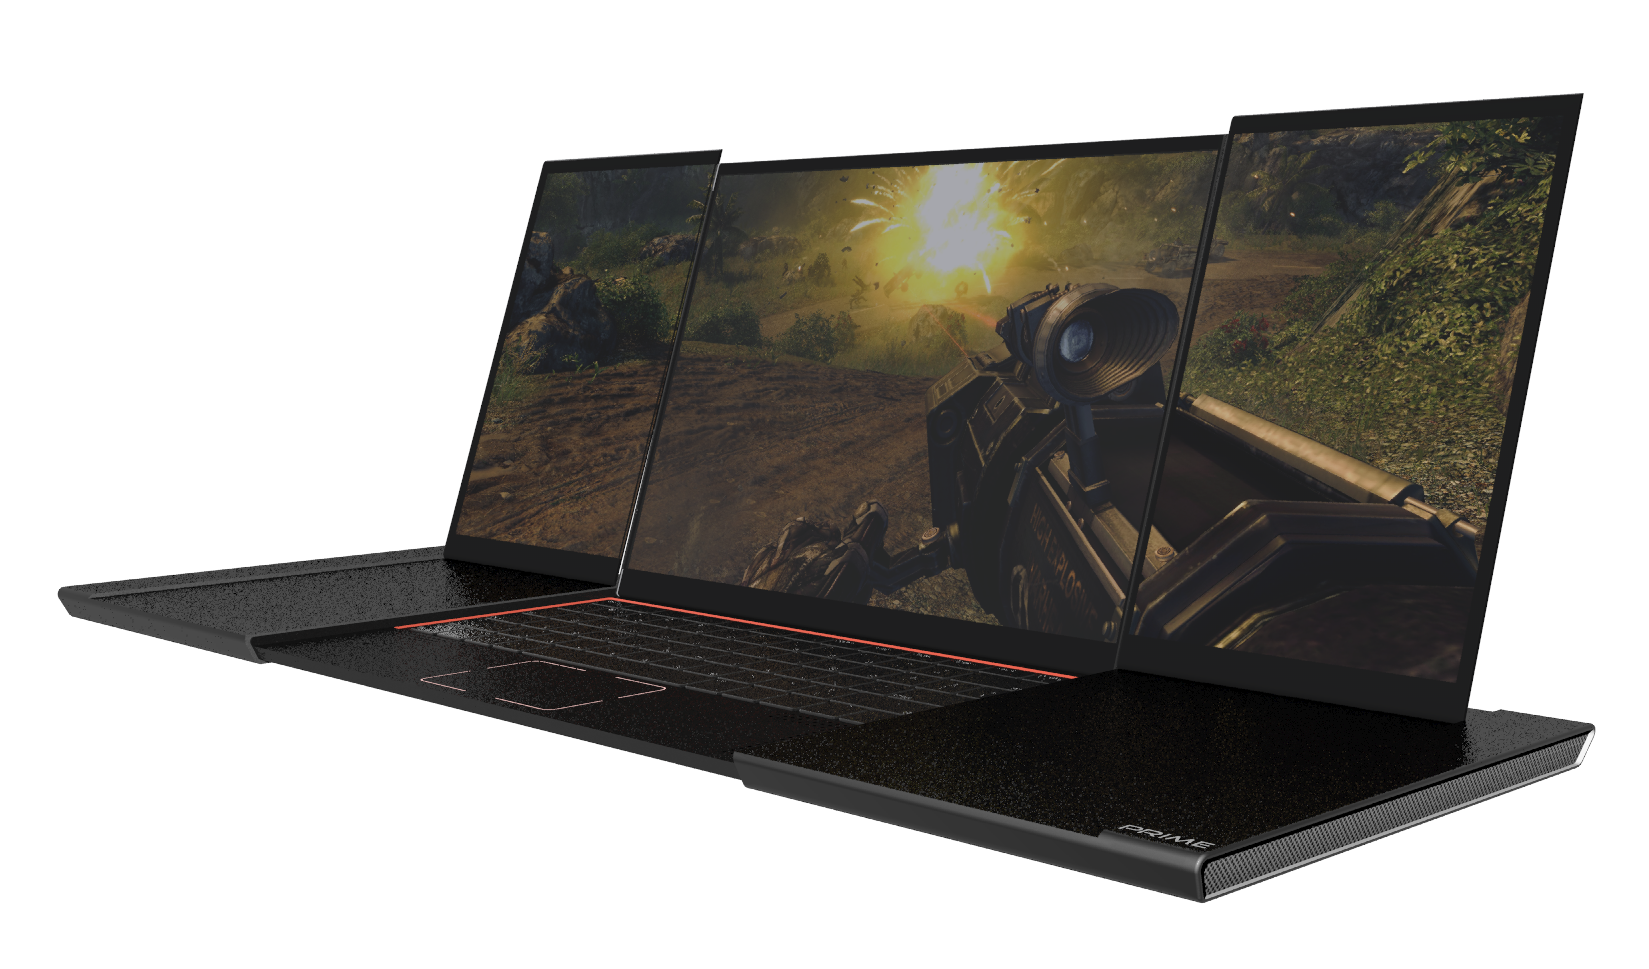 Prime Gaming Laptop Unveiled (Concept PC) | REALITYPOD